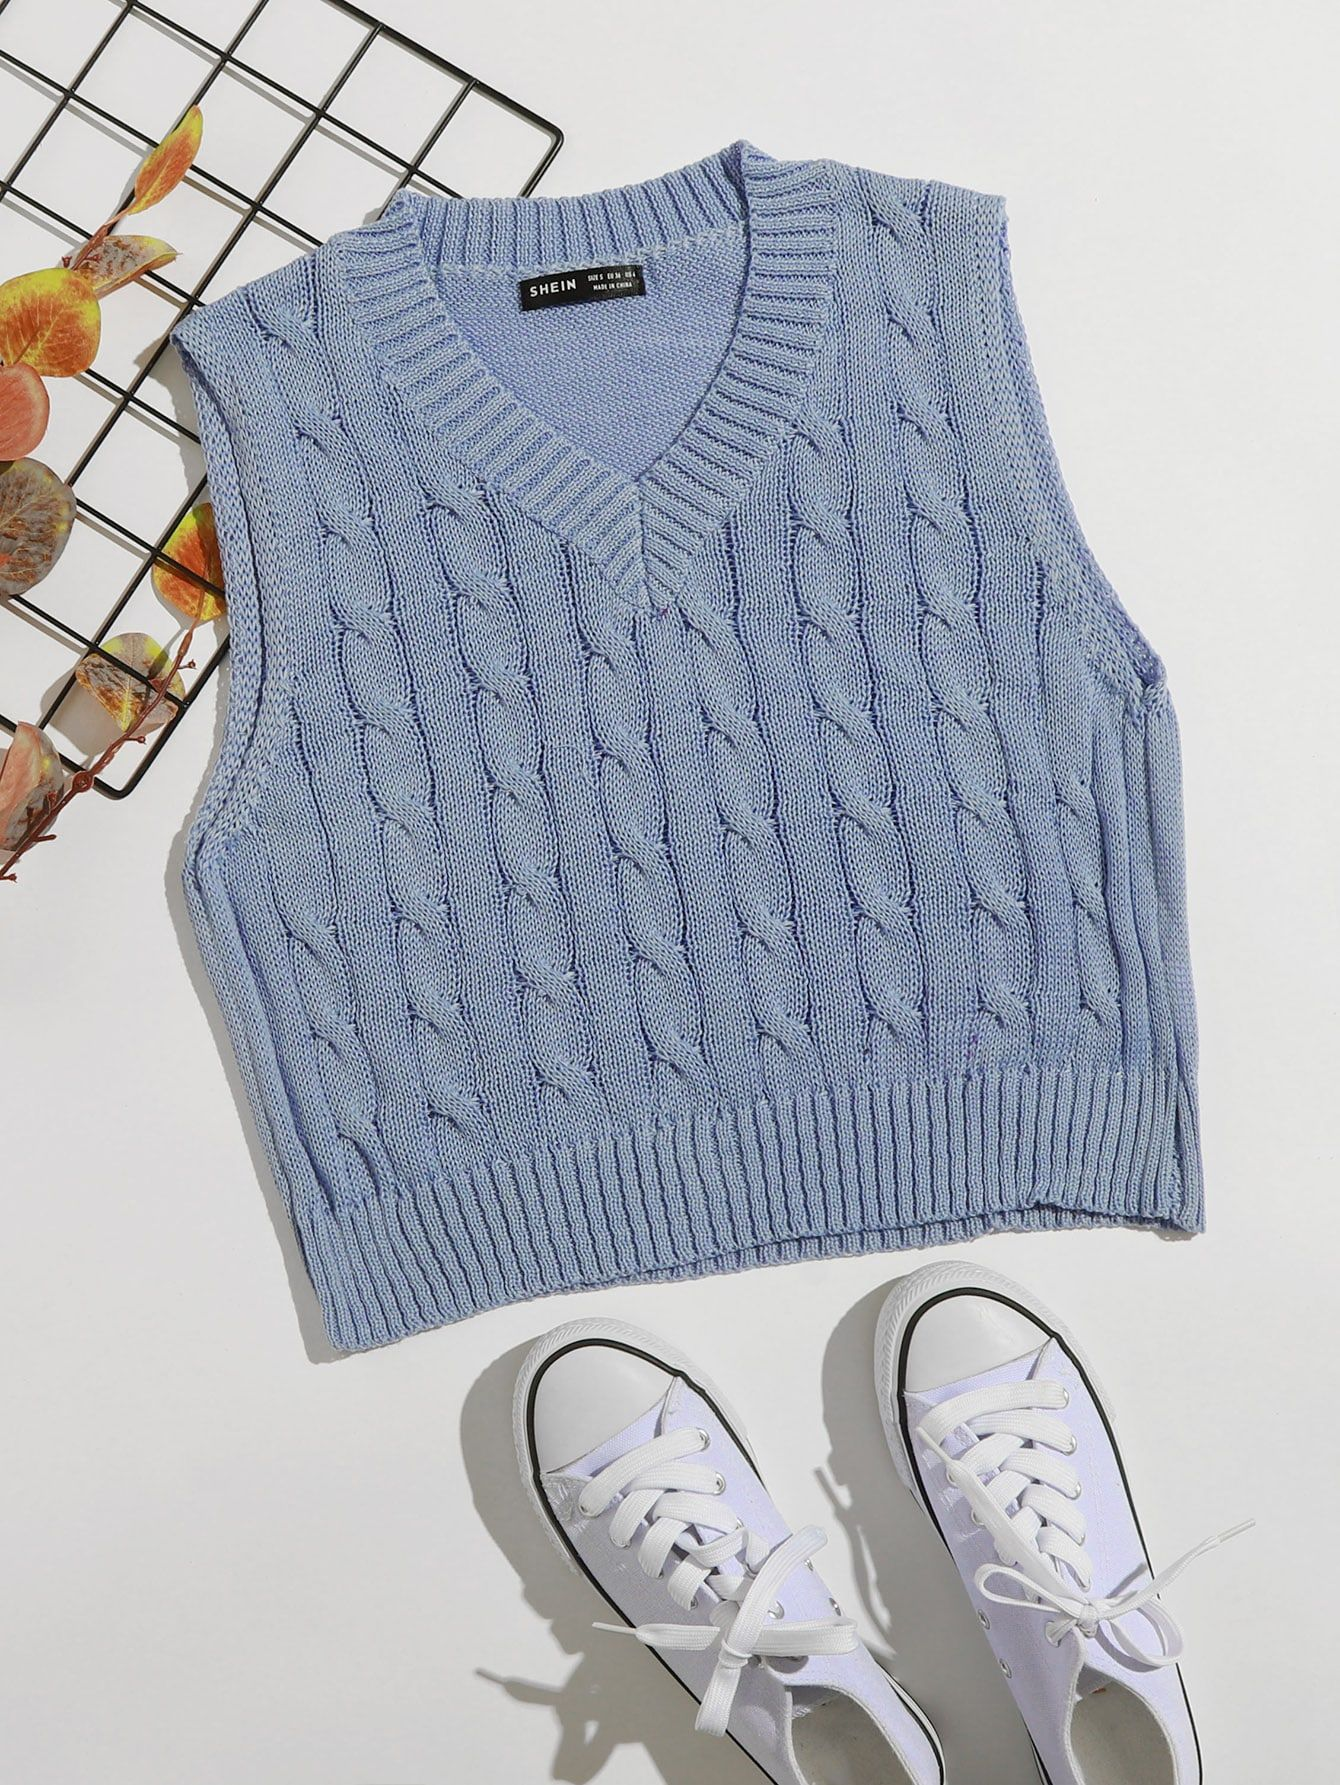 Black Friday 2020 Cable Knit Sweater Vest Shein Usa In 2020 Sweater Vest Cable Knit Sweaters Knot Sweater